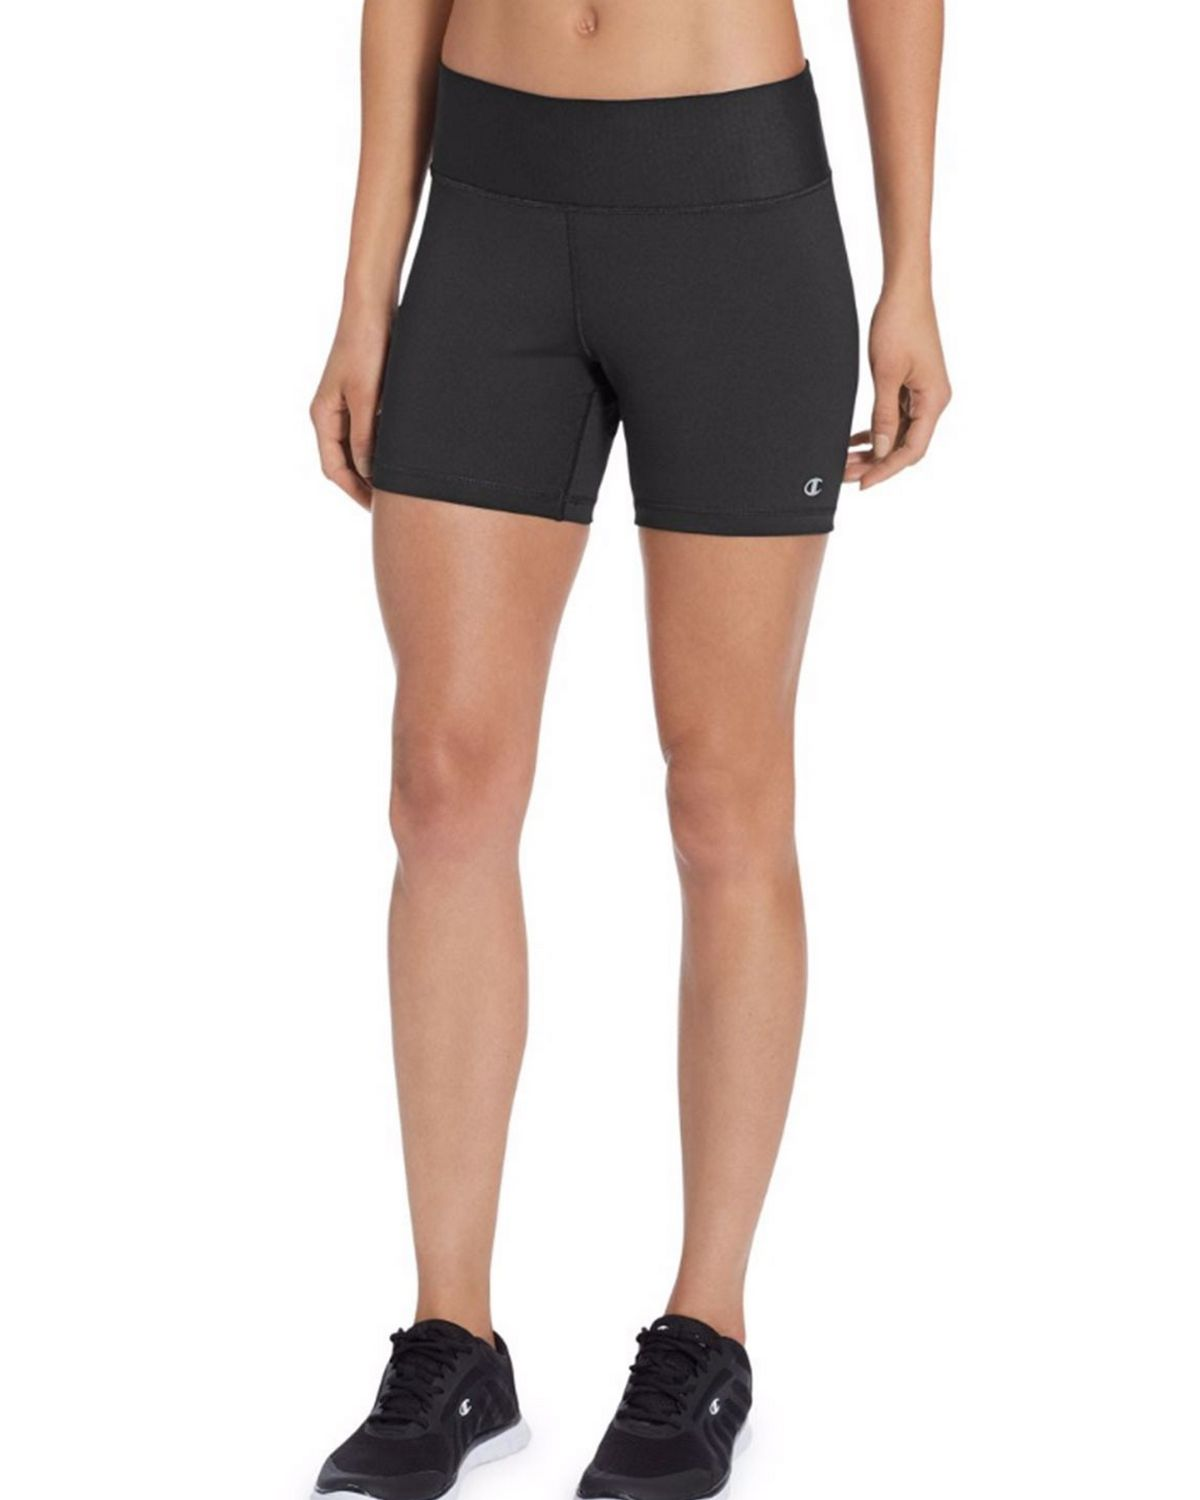 Champion M50240 Womens Shorts - Black - XS M50240